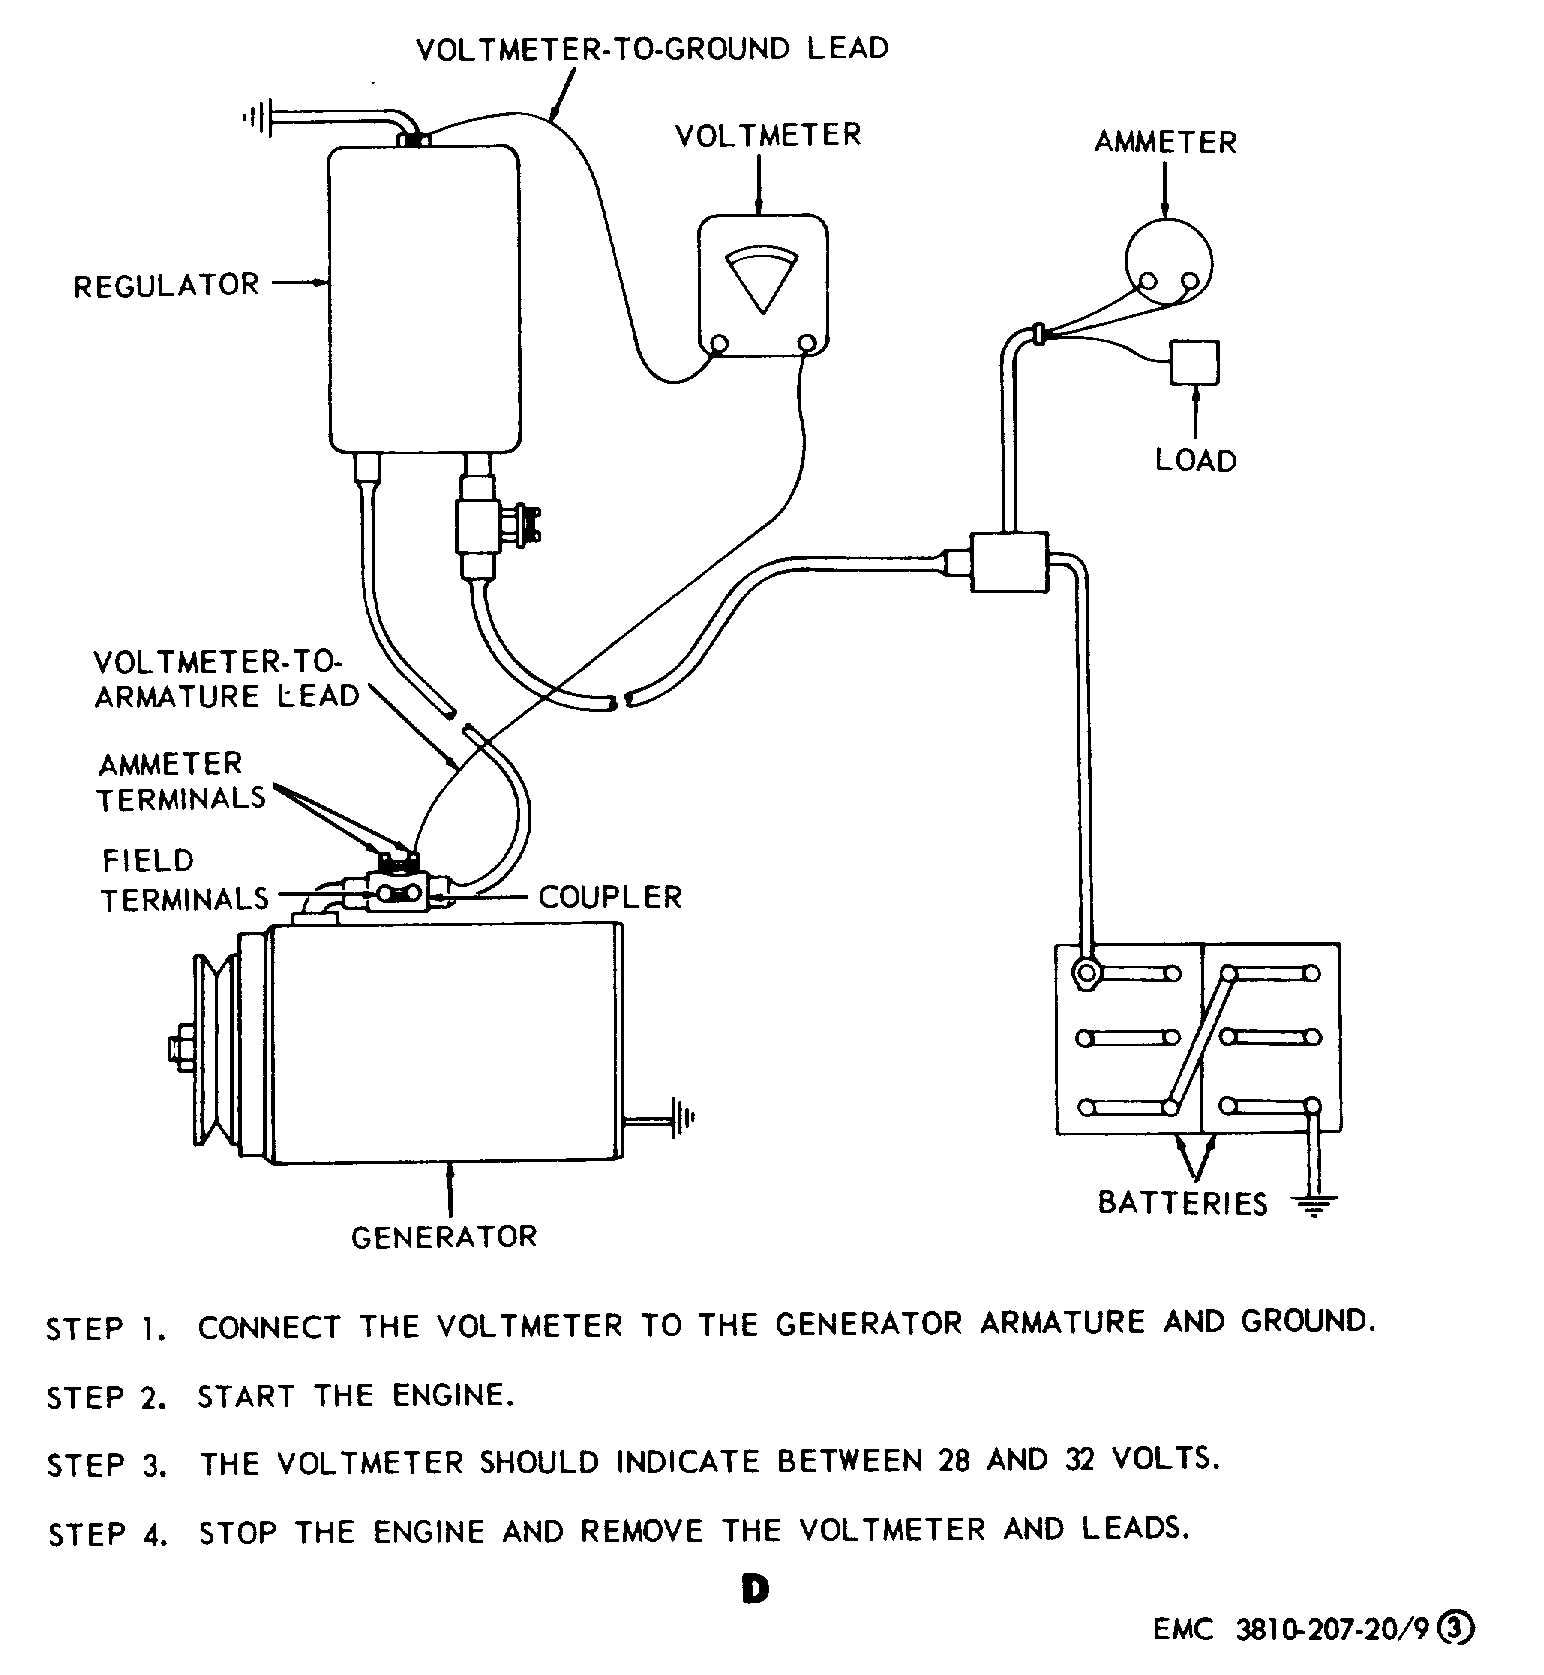 12 Volt Starter Wiring Diagram Gm 1994 Accord Wire Diagram Bege Wiring Diagram